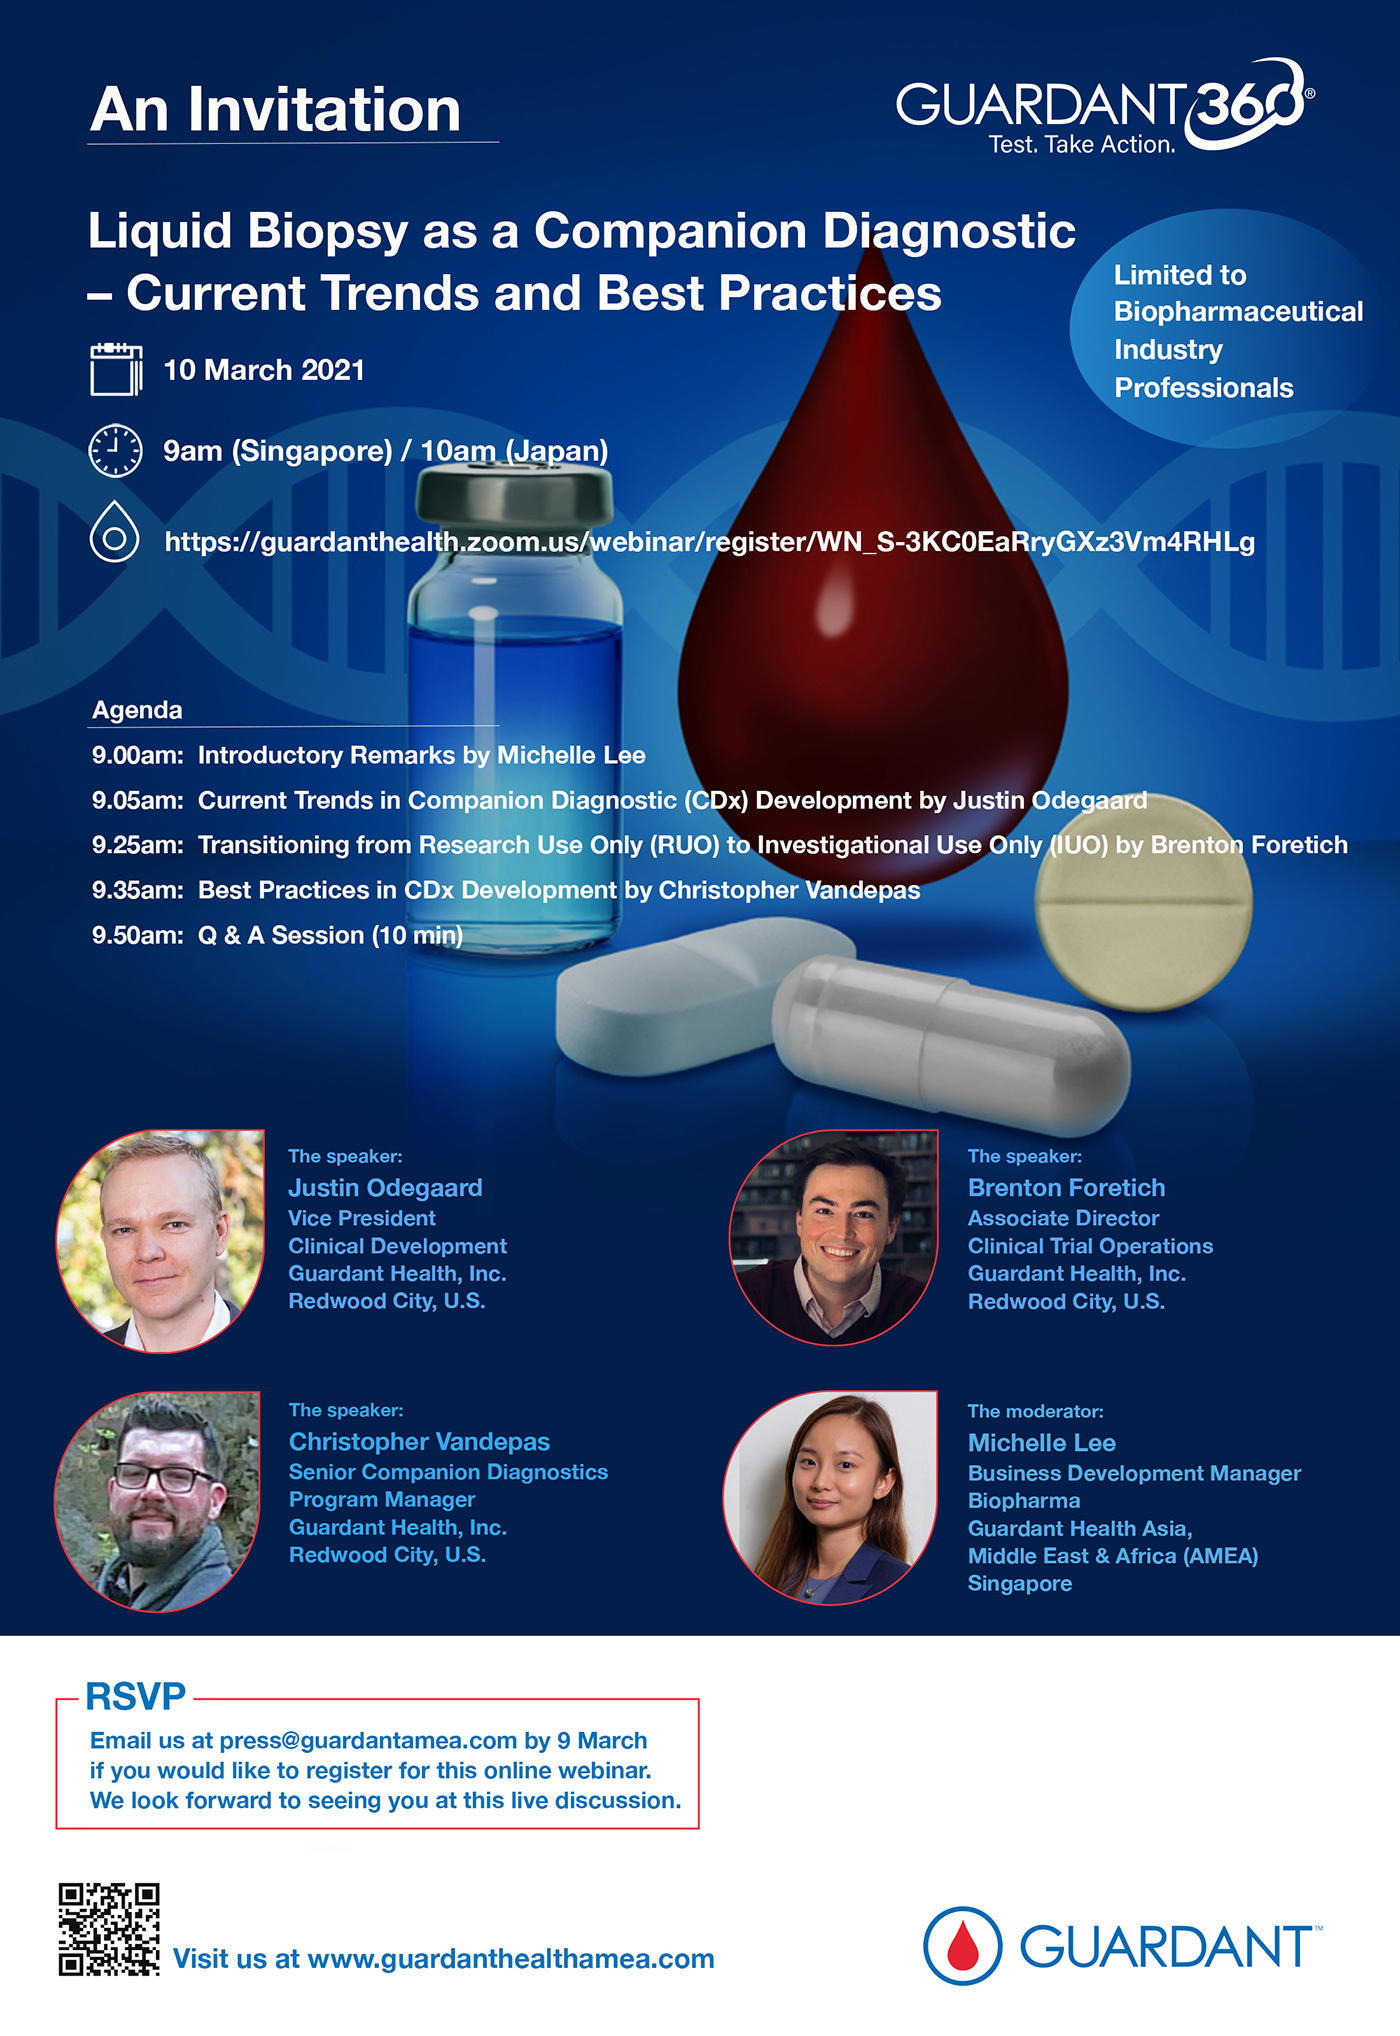 Liquid Biopsy as a Companion Diagnostic – Current Trends and Best Practices